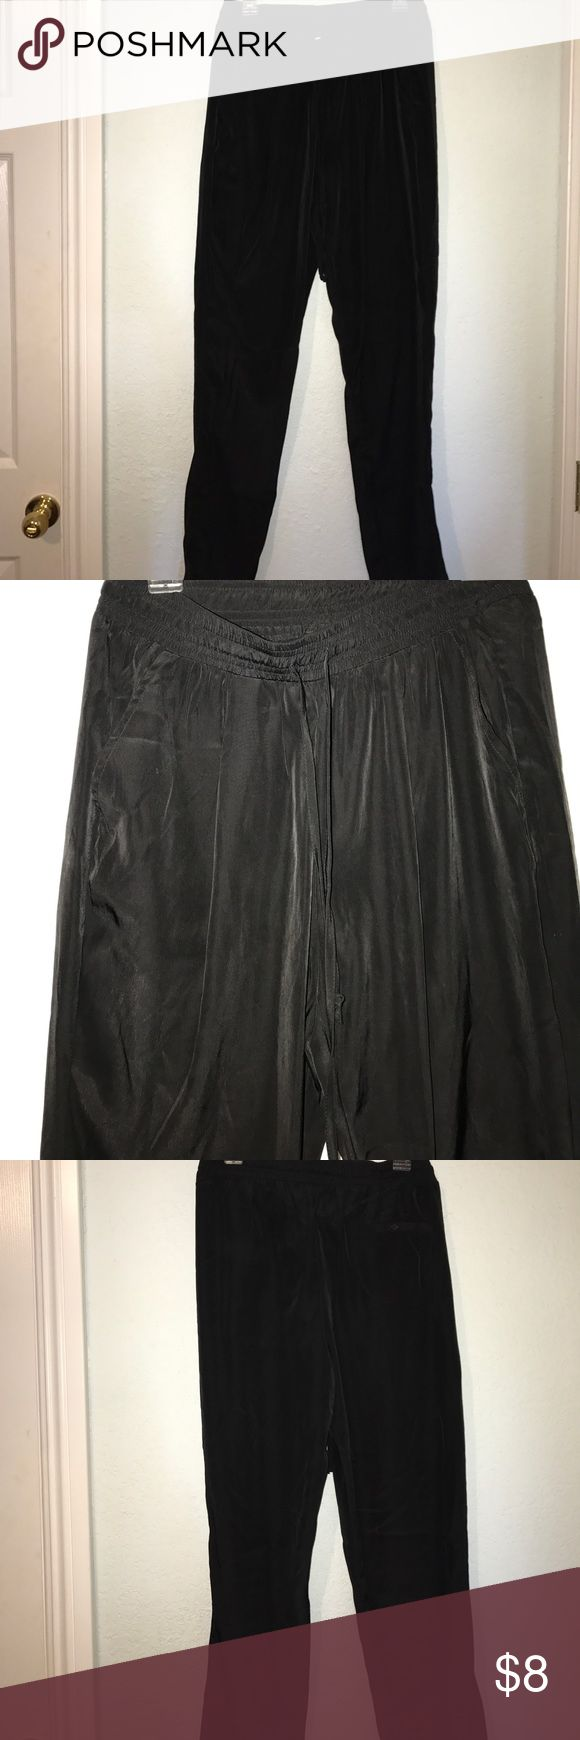 Black or Green Pants I am selling two pants: black and military green pants... I would use them as slacks because they are dressy pants but not slacks... confusing I know lol... very good condition only used twice Pants Ankle & Cropped